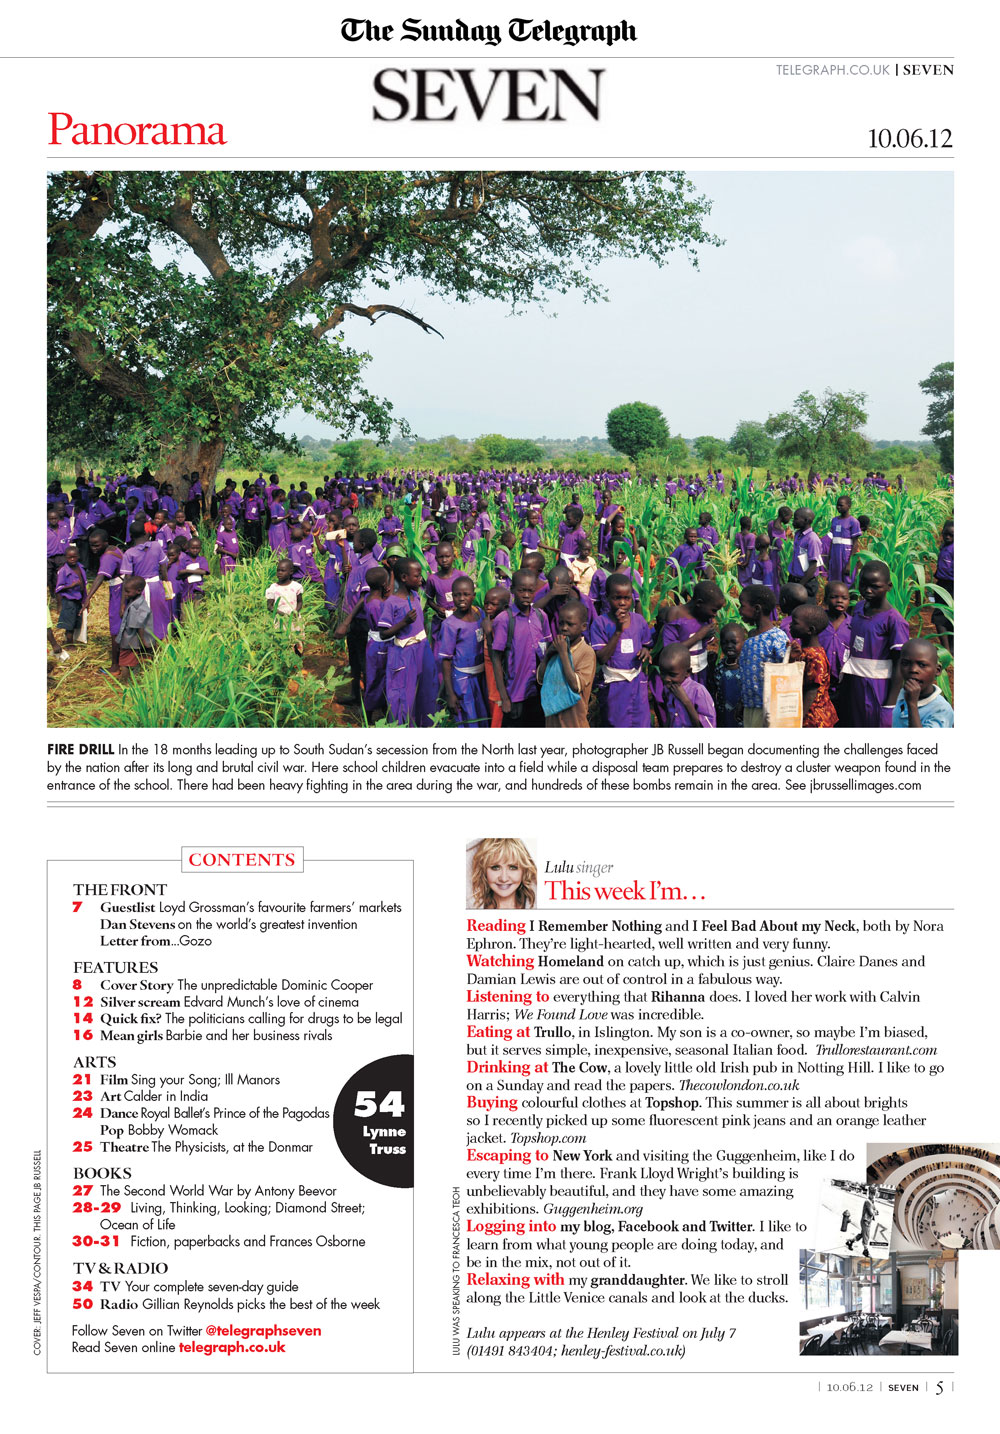 South Sudan image featured in the Panorama section of Seven Magazine.